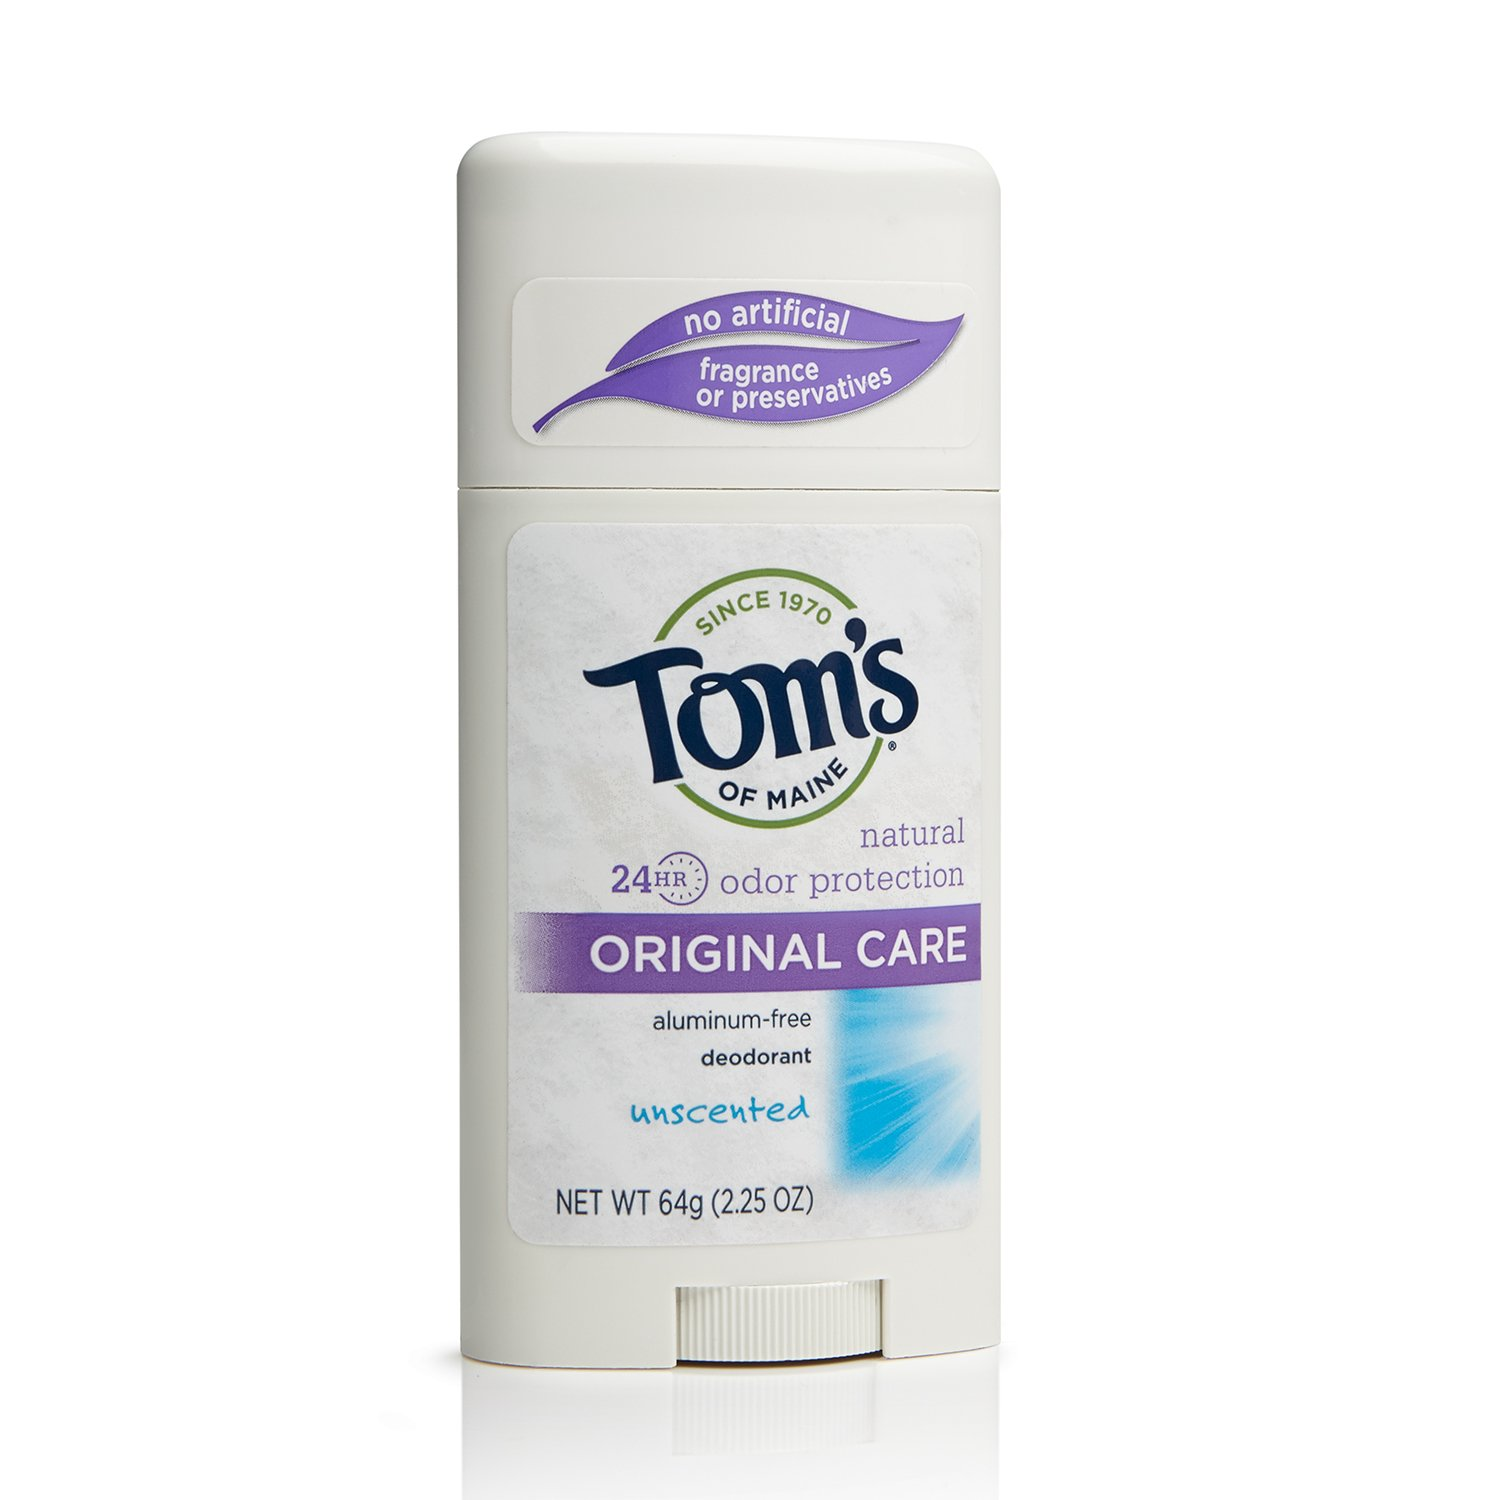 Tom's of Maine 683925 Original Care Deodorant Stick, Unscented, 2.25 Ounce, 18 Count